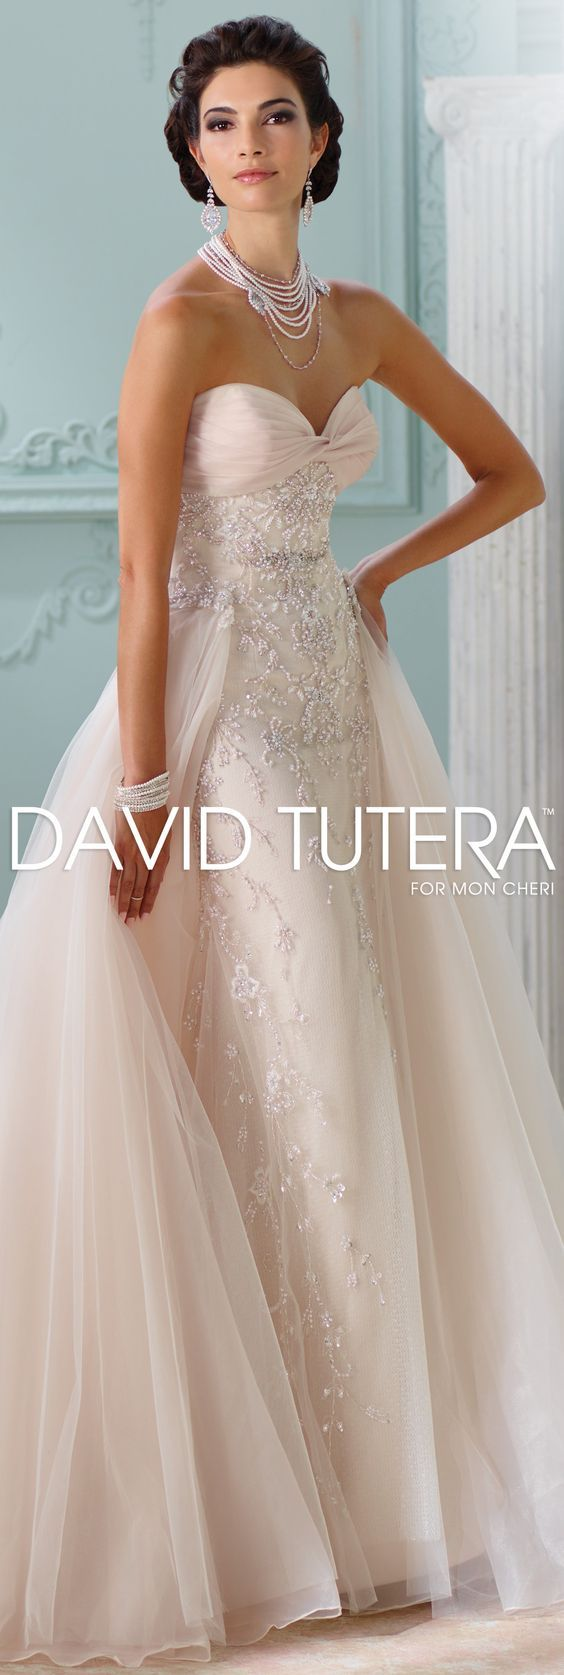 Wedding dresses 2017 david tutera gowns and weddings for David tutera beach wedding dresses